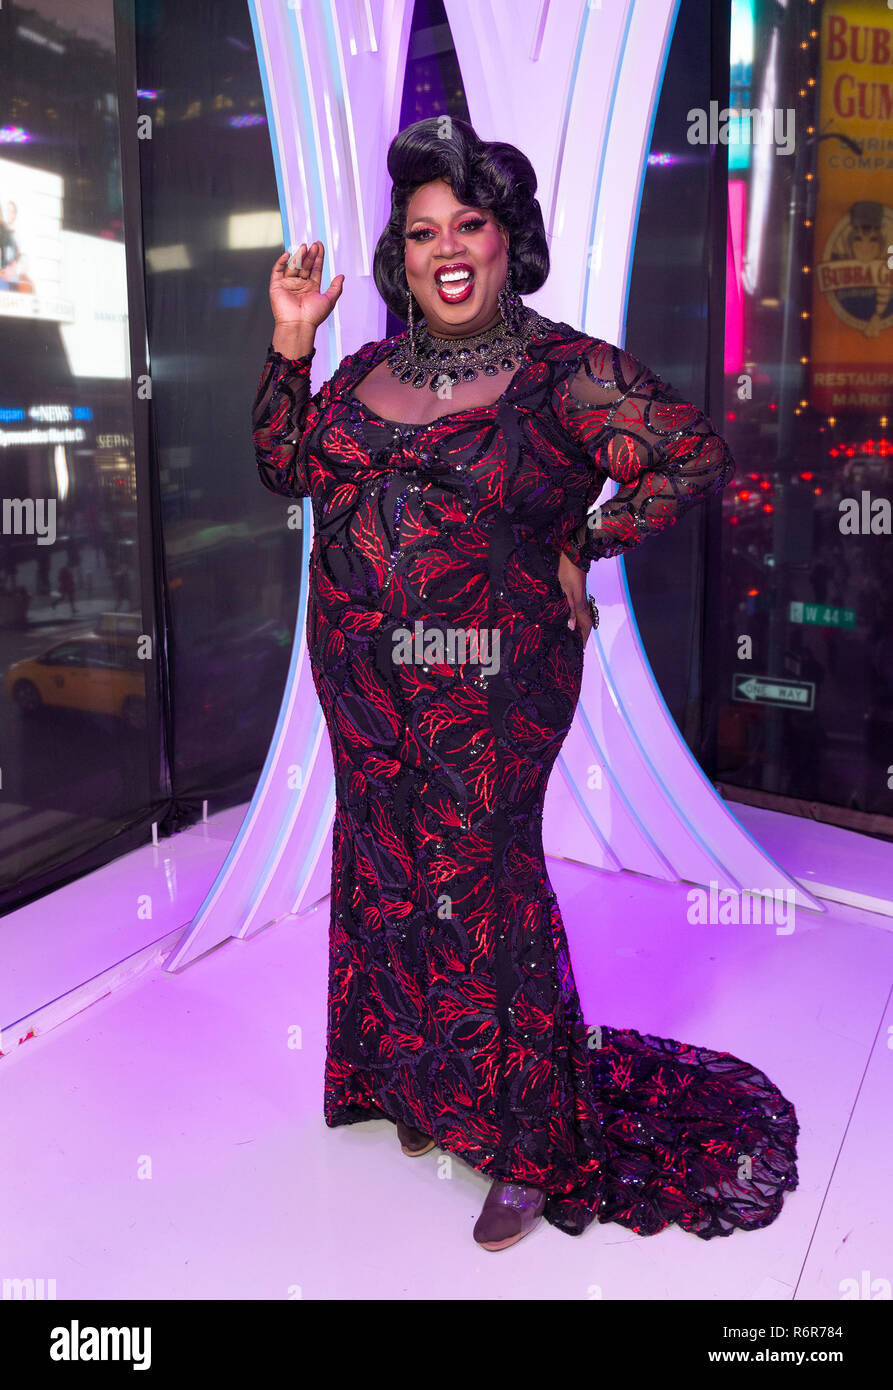 New York, United States  05th Dec, 2018  Latrice Royale